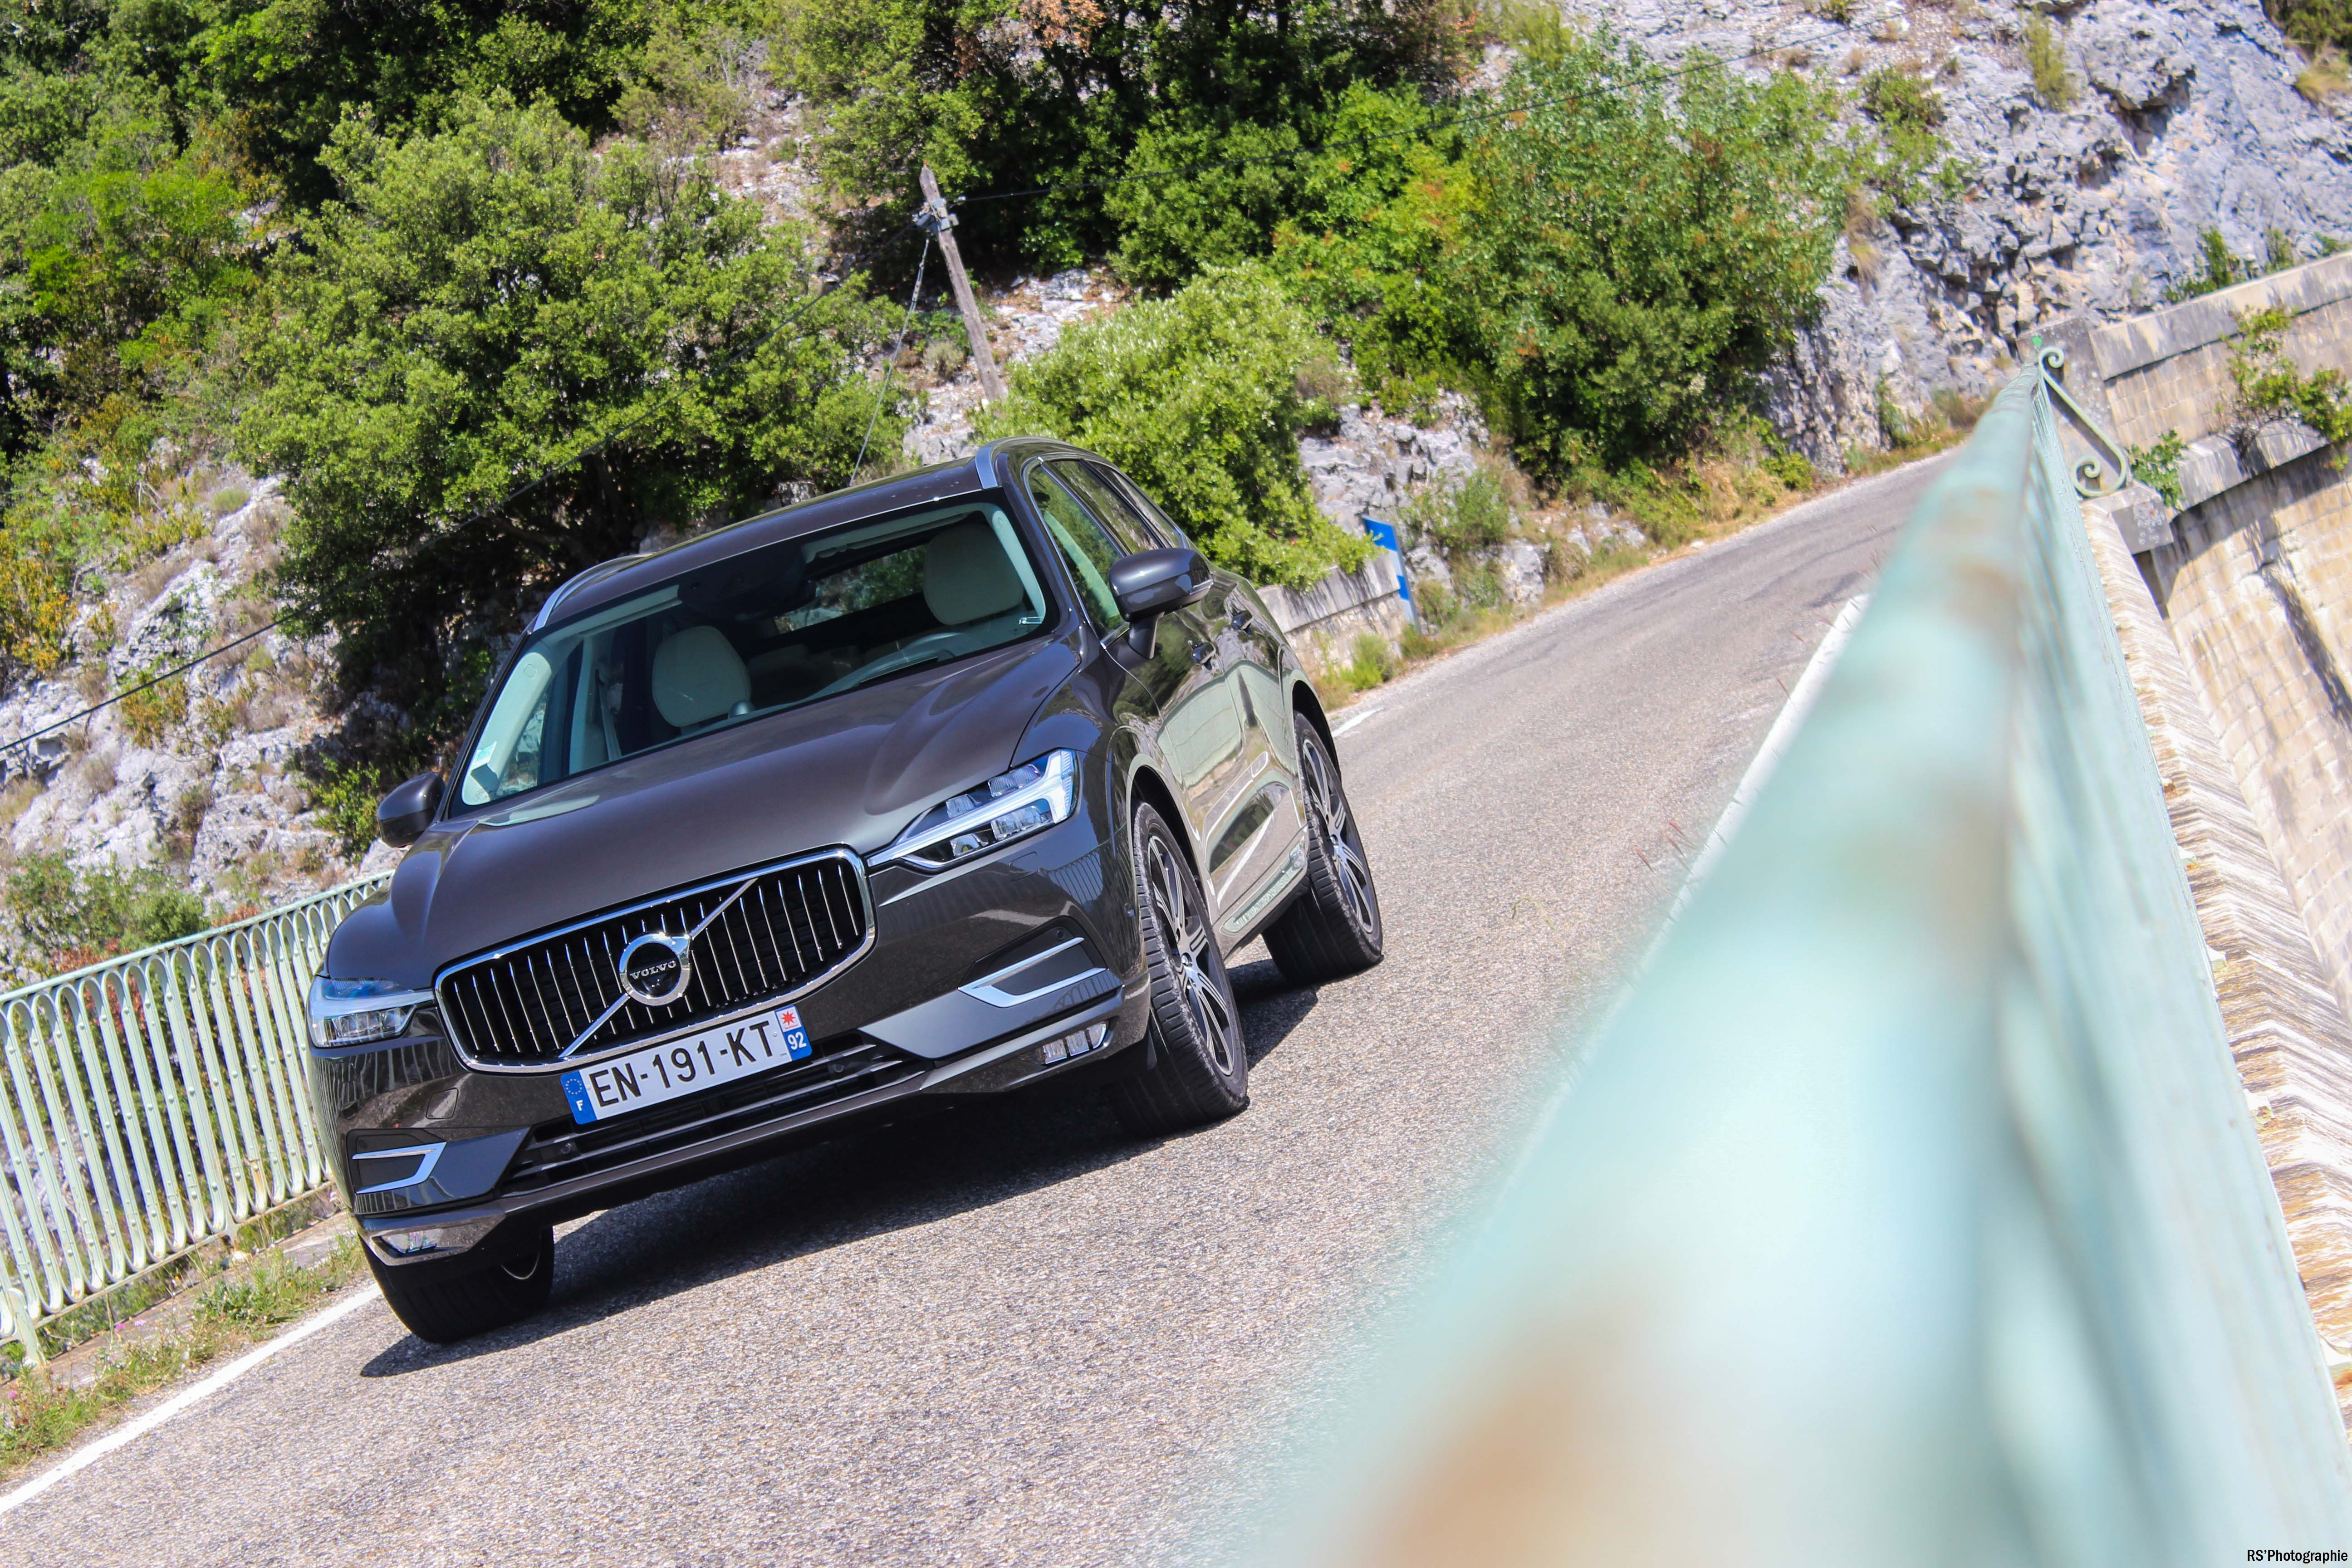 OpéVolvo61-volvo-xc60-avant-front-Arnaud Demasier-RSPhotographie